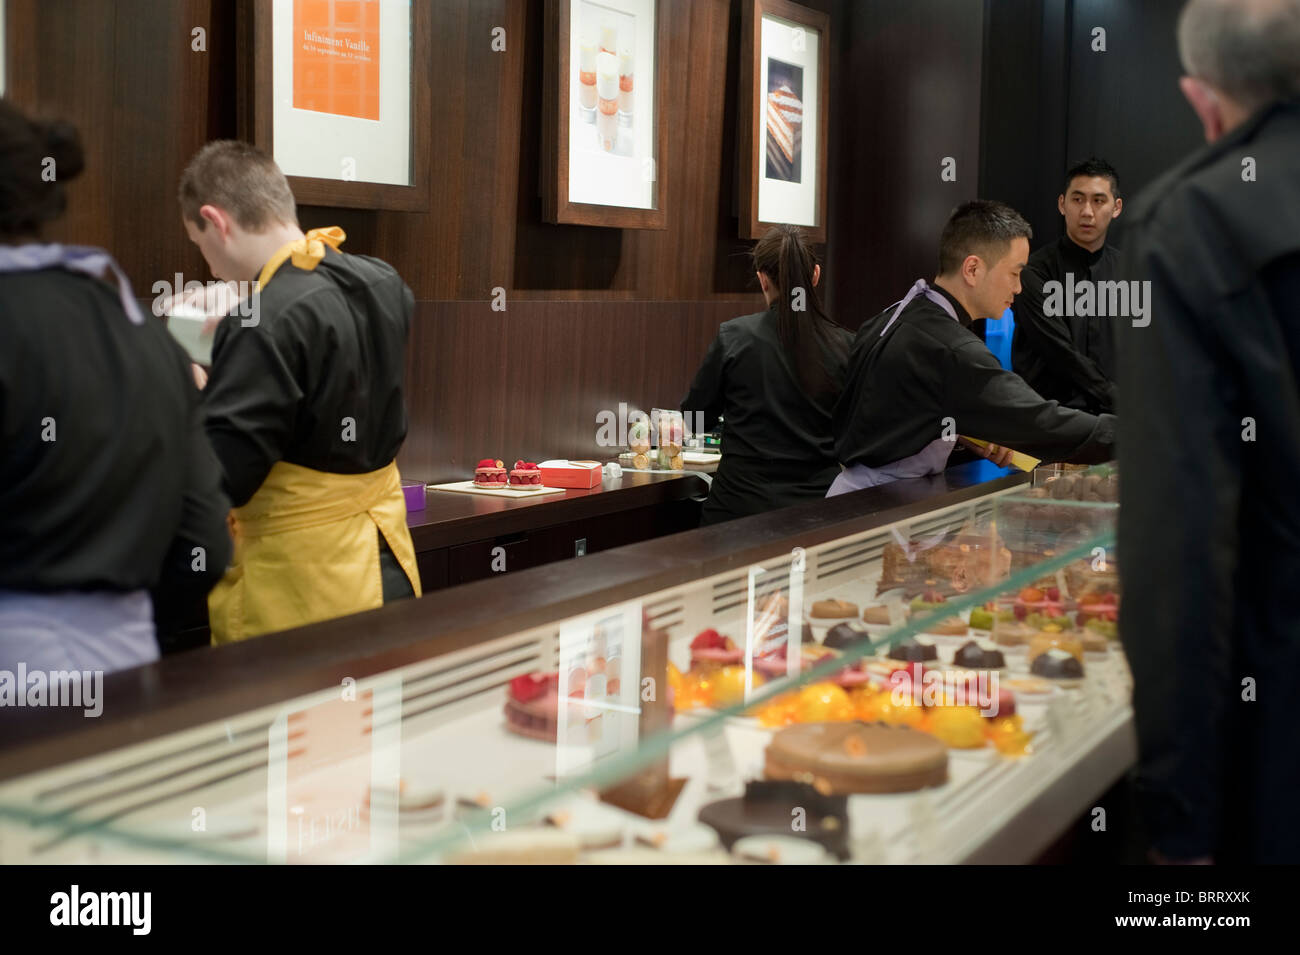 Paris, France, People Shopping in Luxury Chocolate Shop, Patisserie Desserts 'Pierre Hermé' French - Stock Image